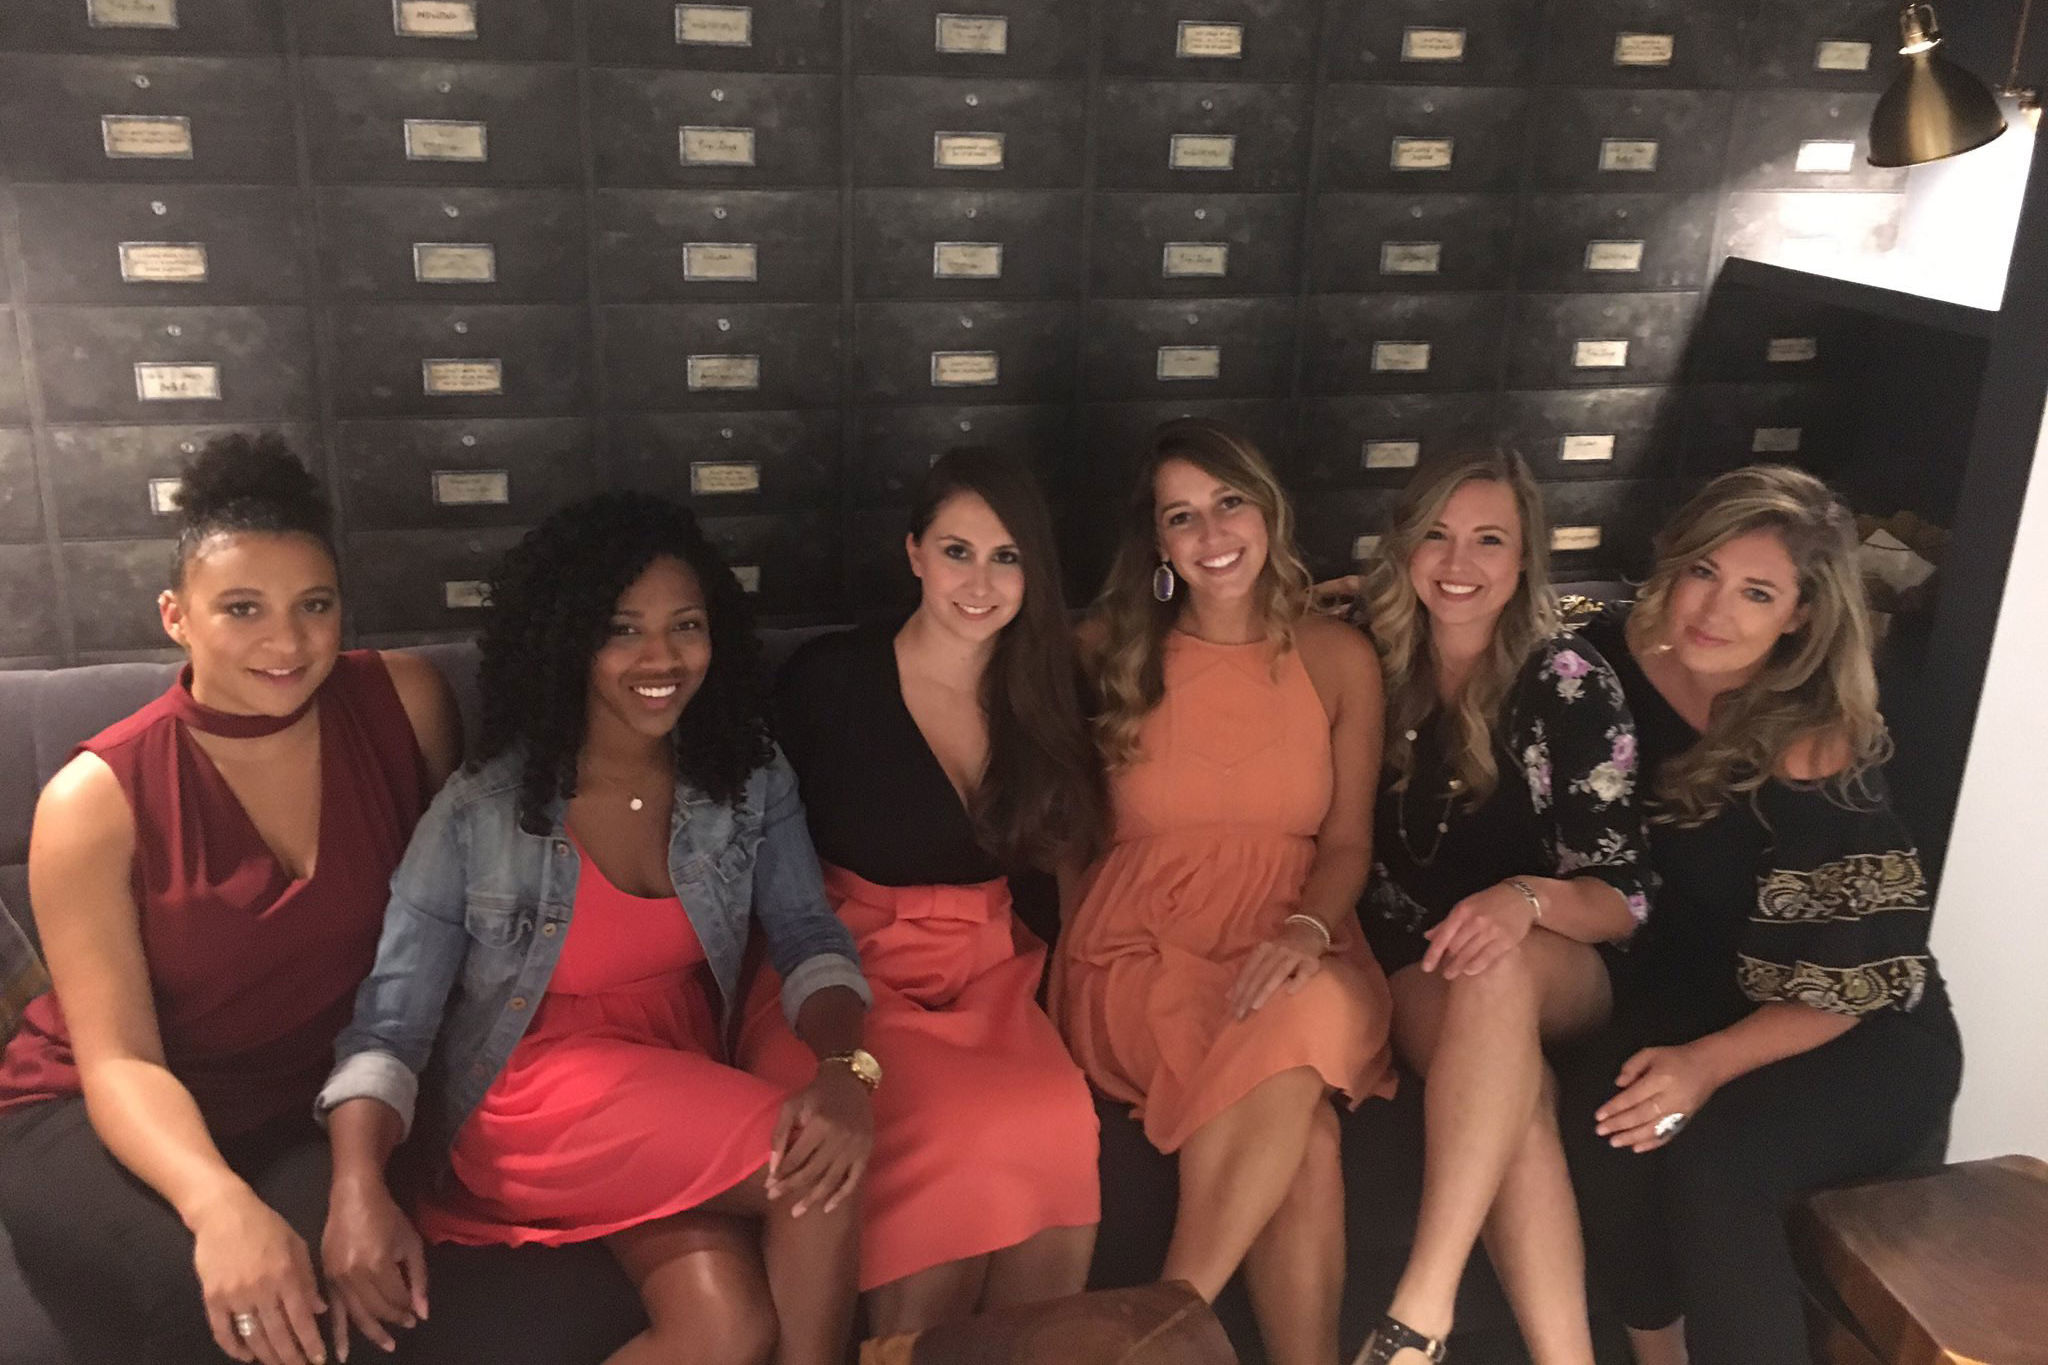 These Six D.C. Women Became Friends After Man Scheduled Back-to-Back Dates with Them